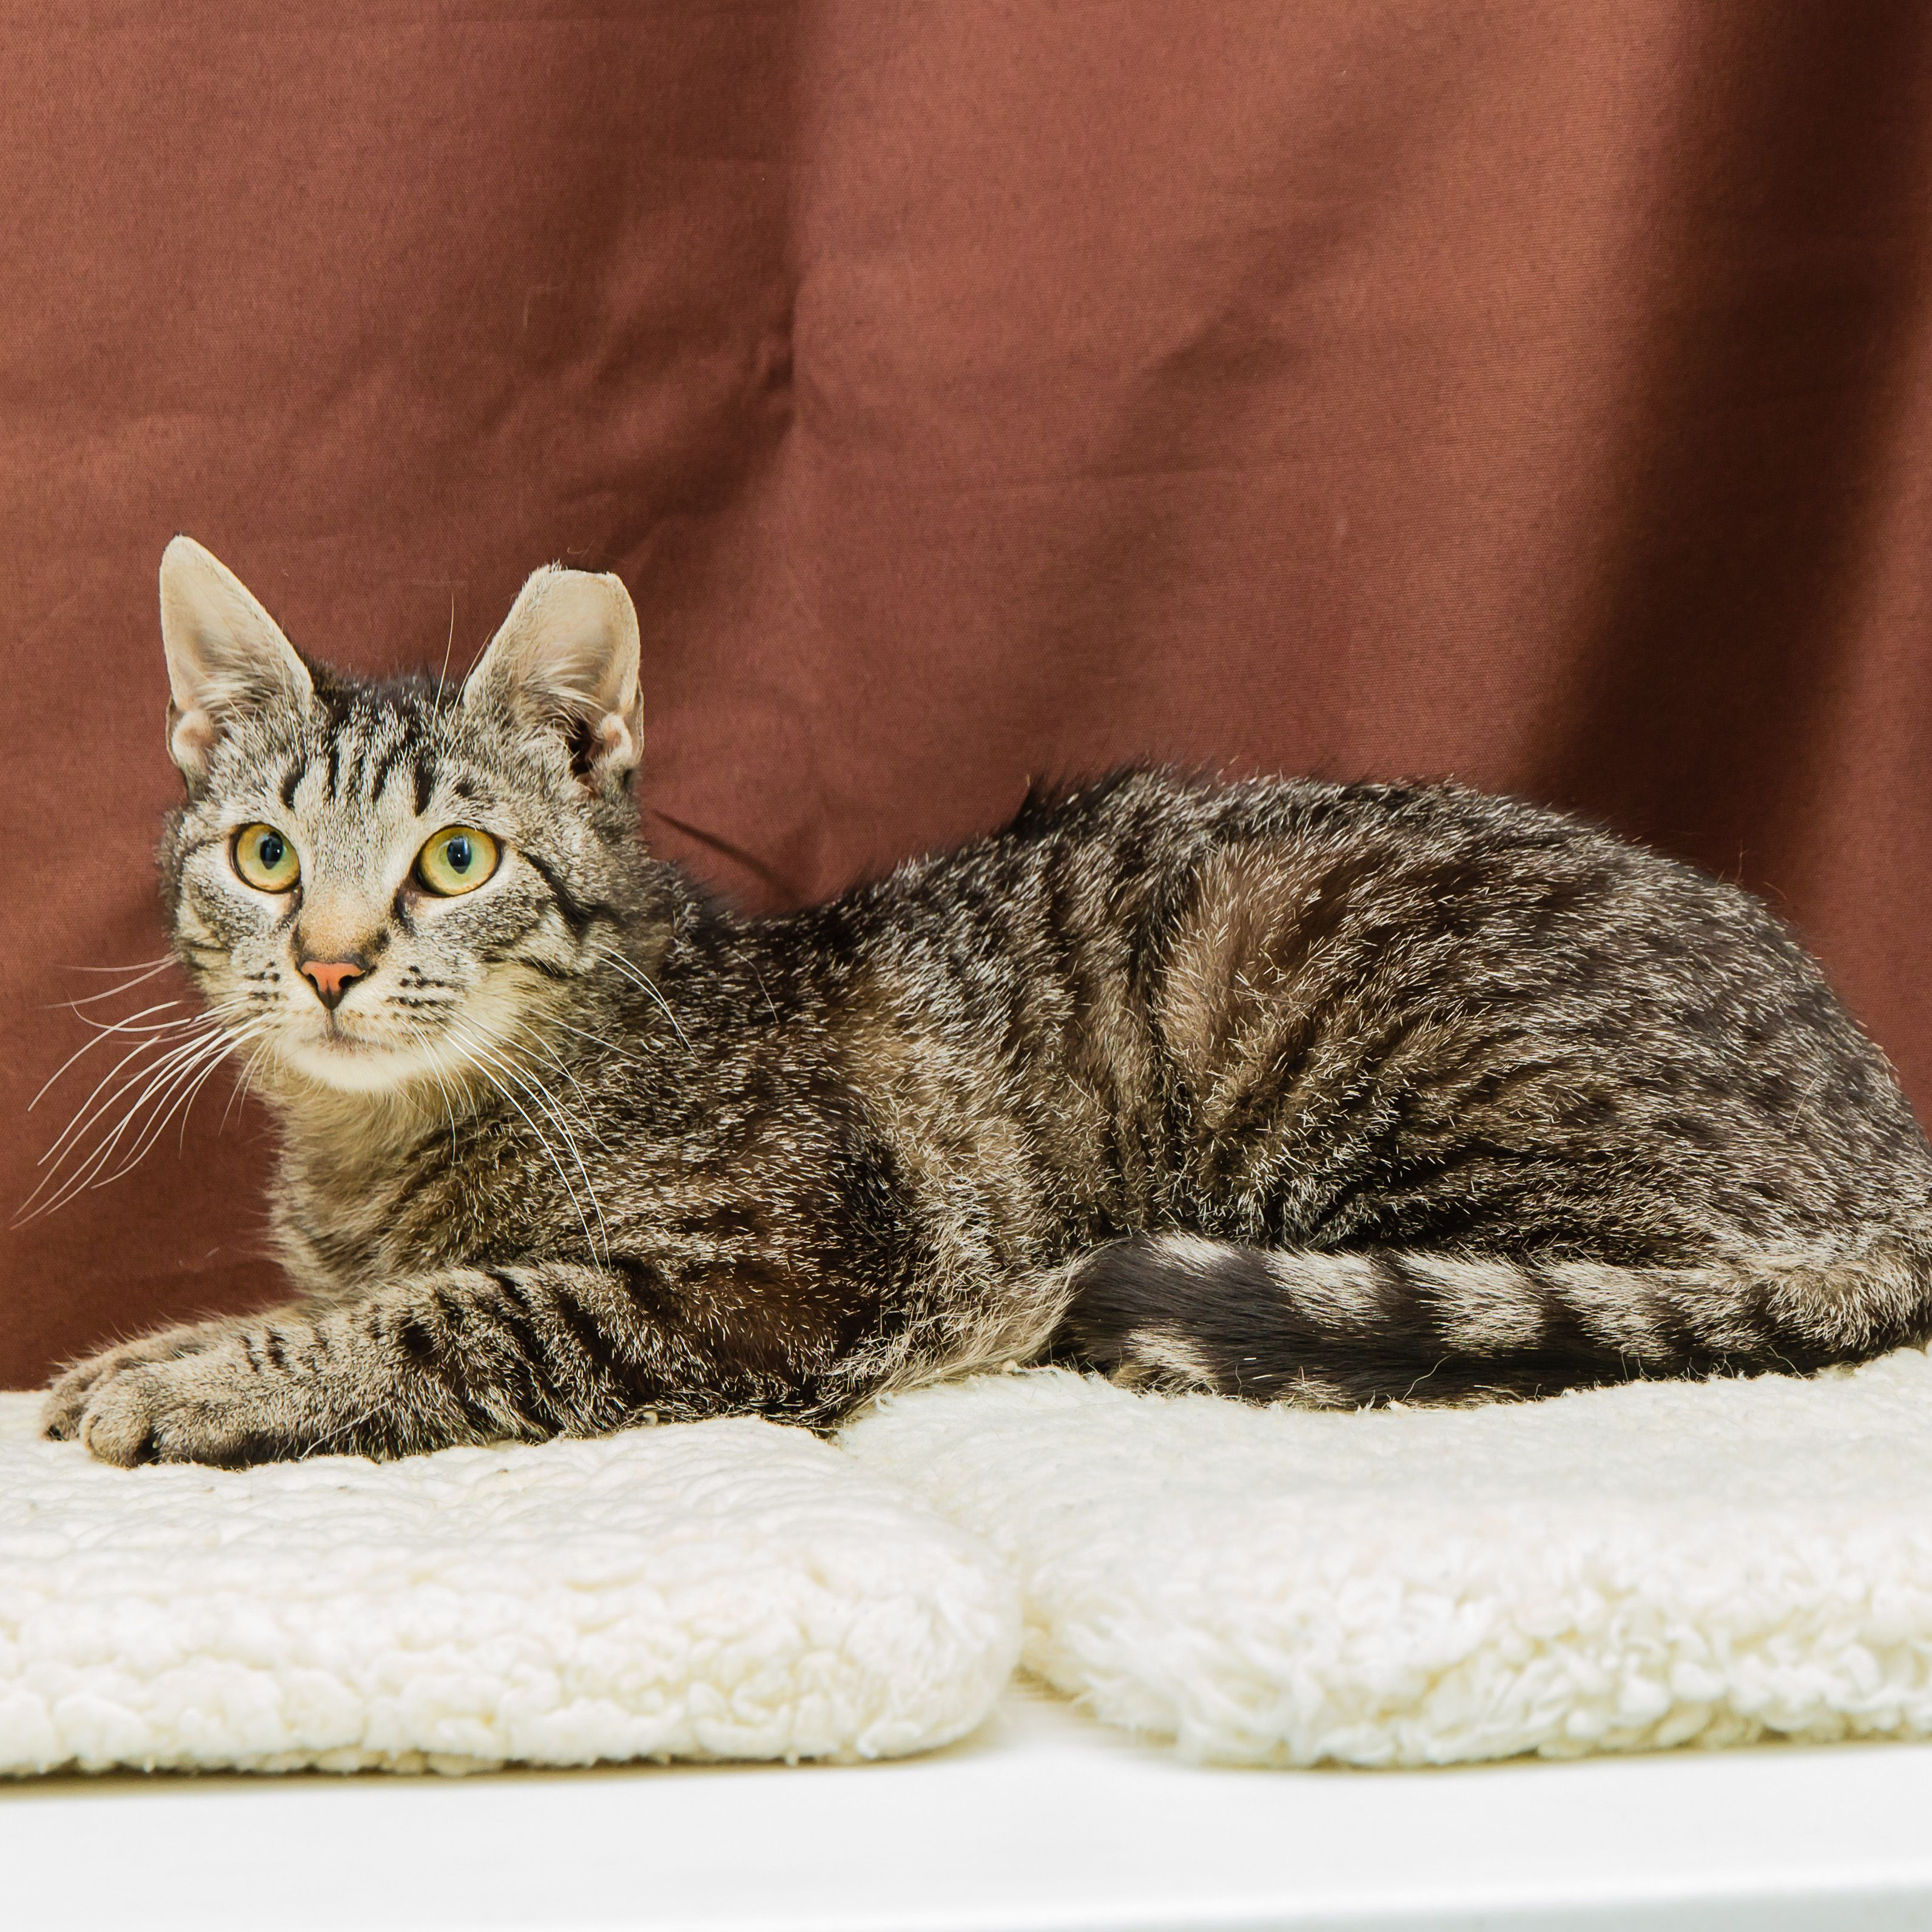 Samuel An 11 Month Old Neutered Male Cat Needs A Foreverhome Can You Help 100kchallenge Cats Animals Humane Society